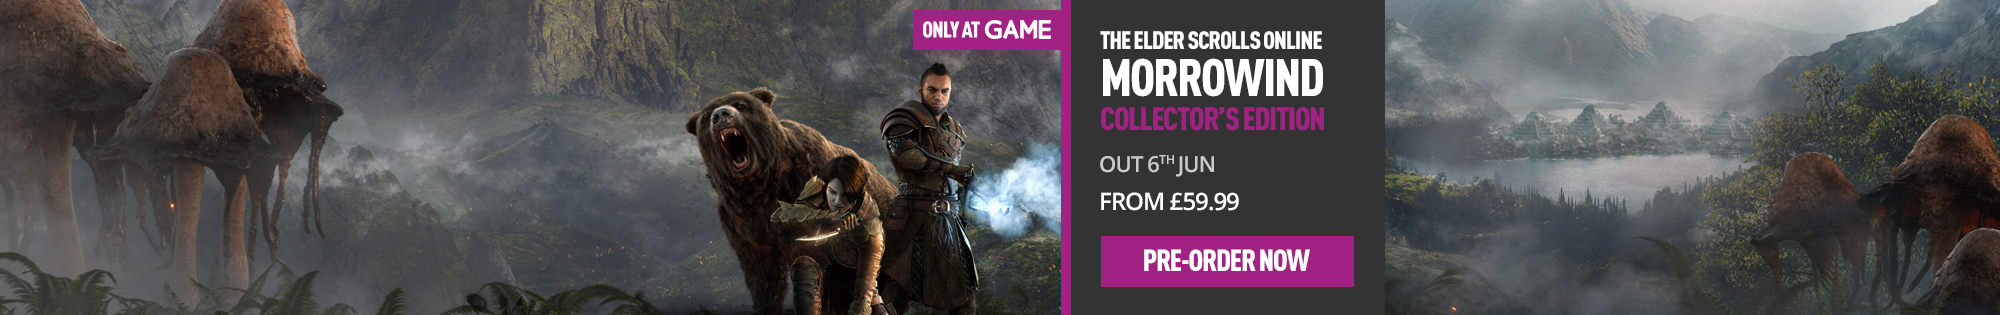 Elder Scrolls Online Morrowind for PlayStation 4 and Xbox One - Homepage Banner